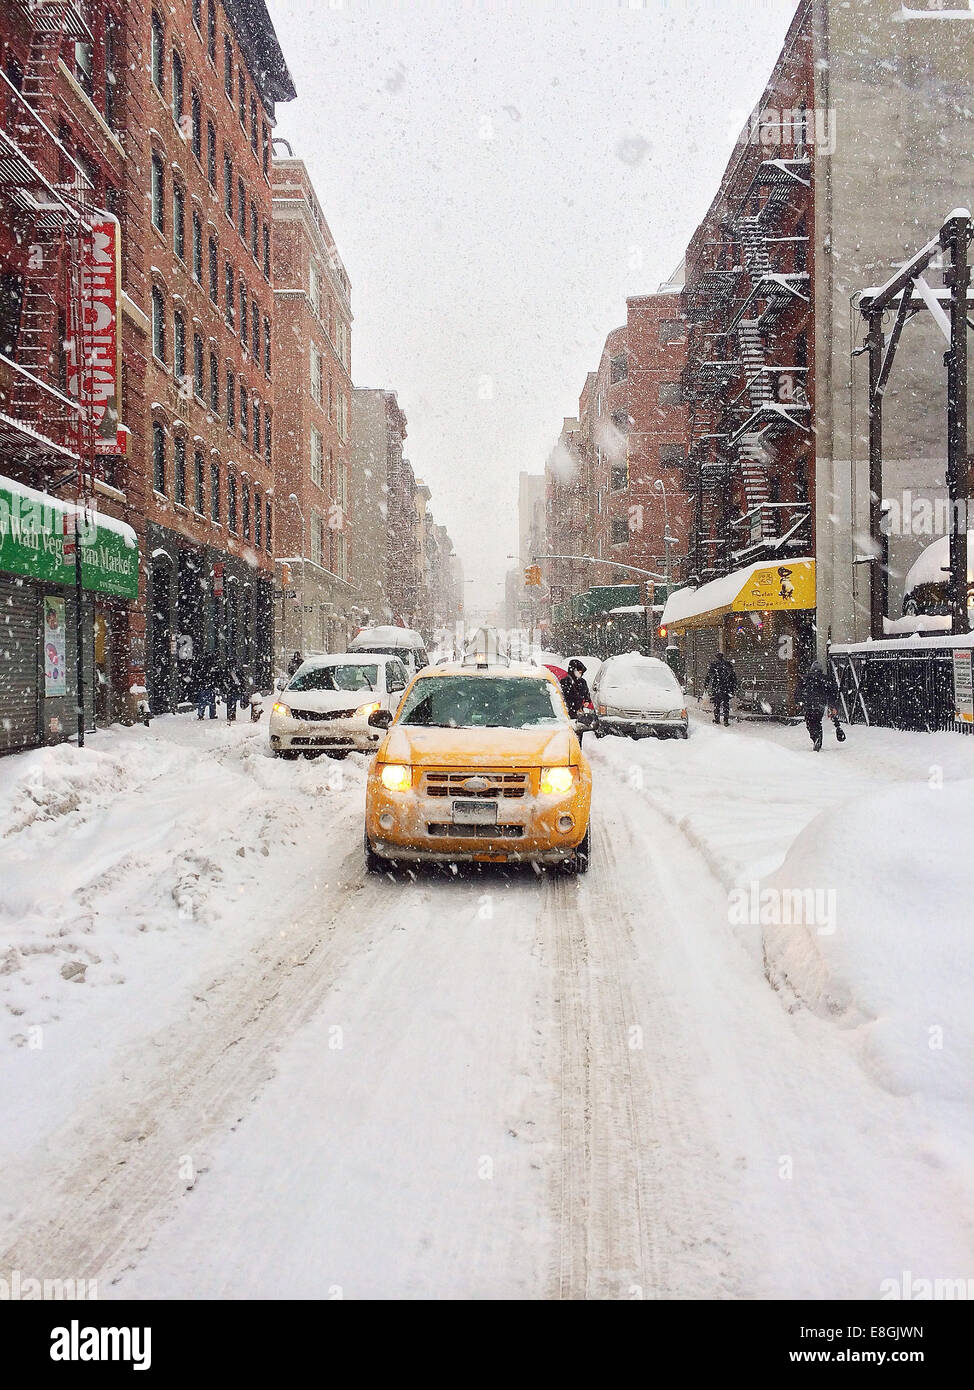 USA, New York City, Lower East Side, Chinatown, Yellow Cab en pleine tempête Photo Stock